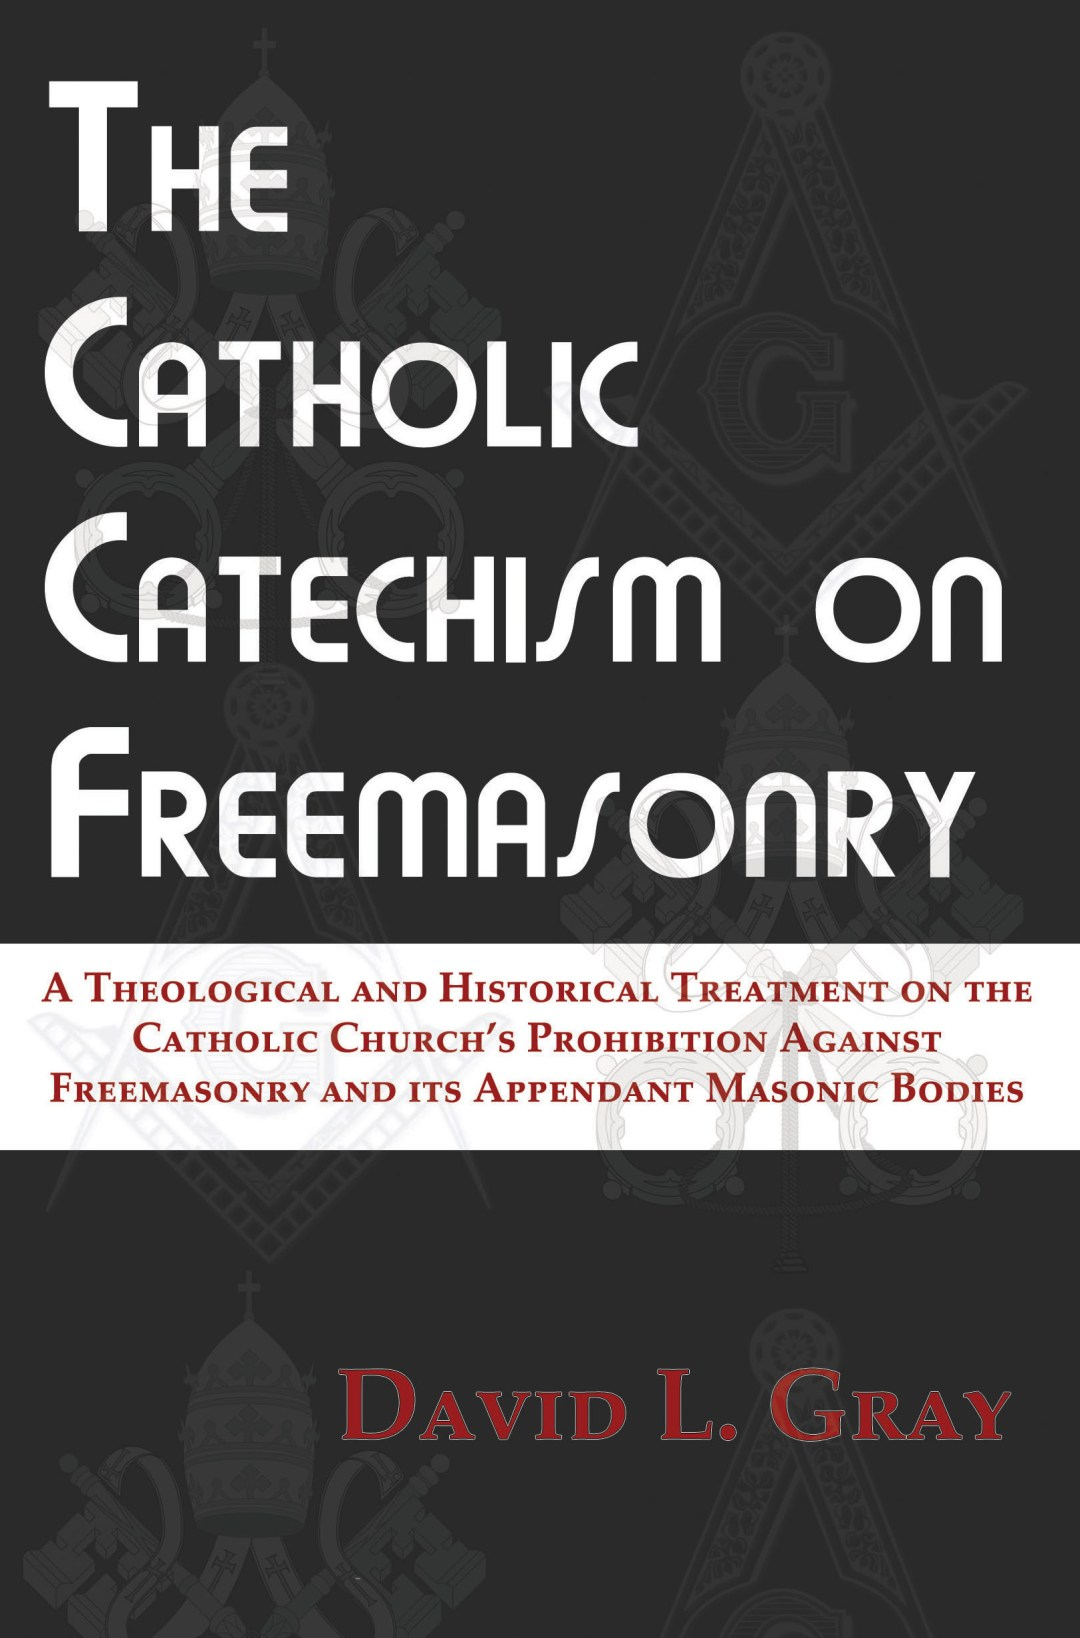 The Catholic Catechism on Freemasonry